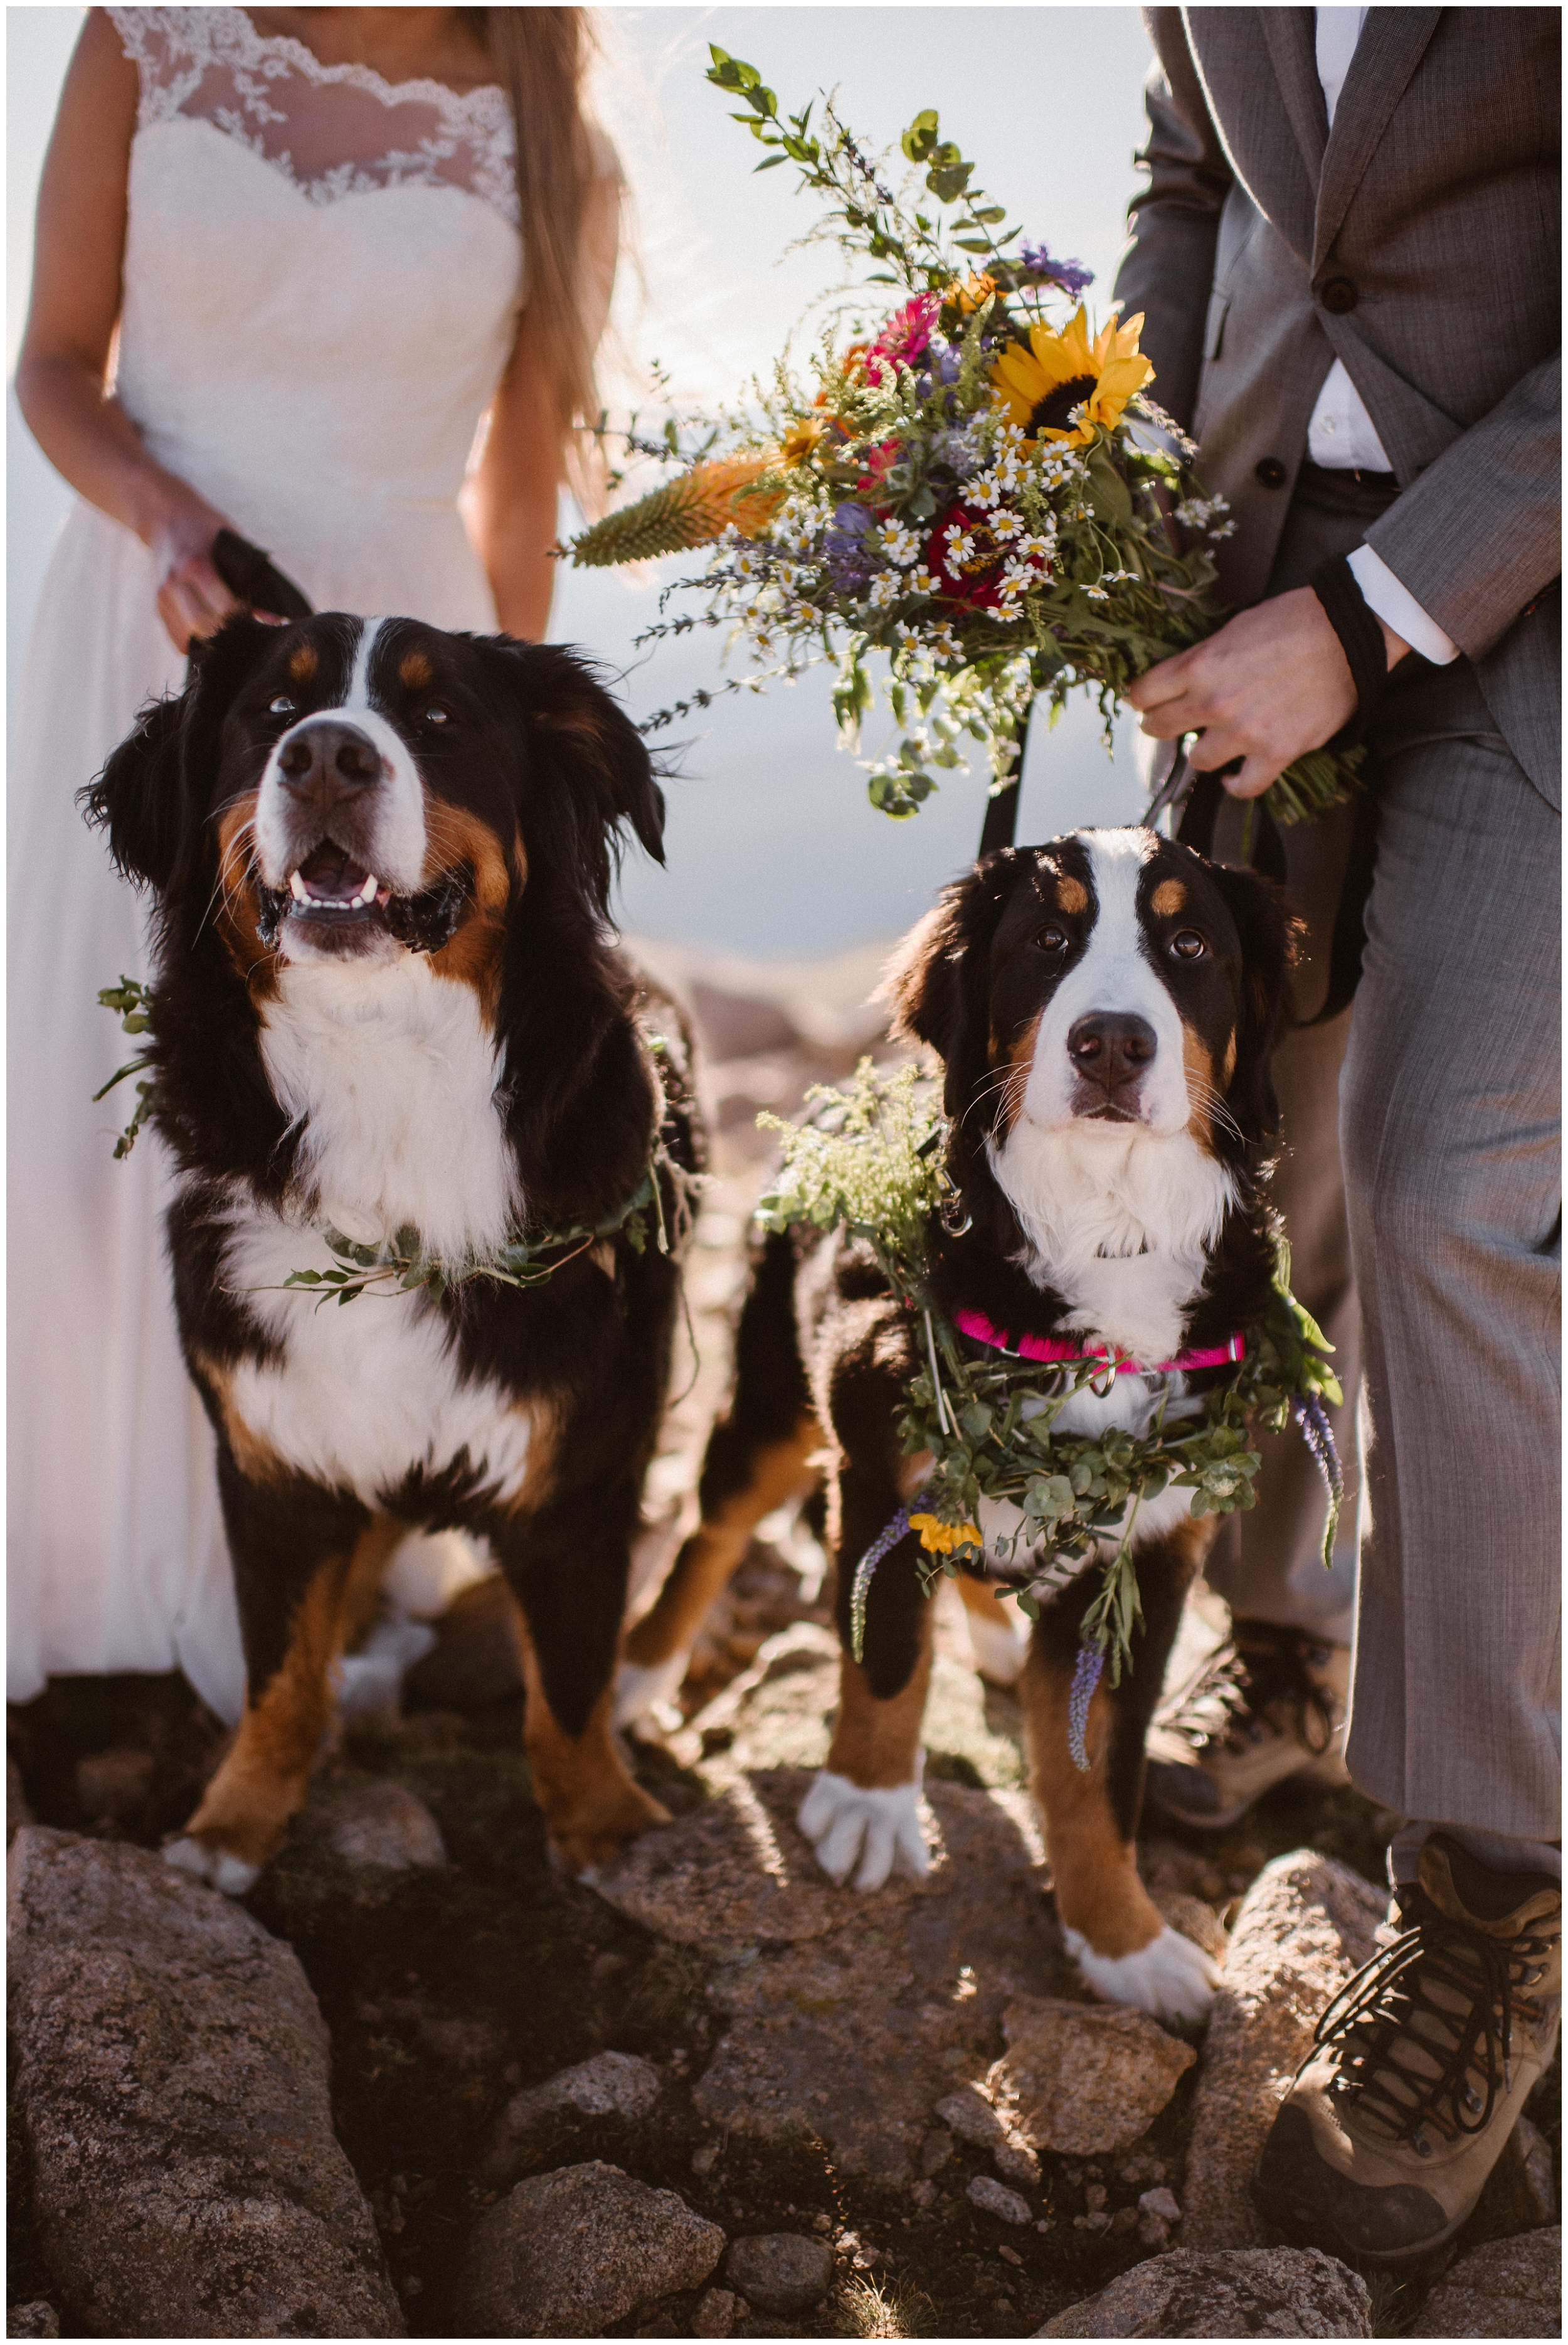 Two Bernese Mountain Dogs pose with their bride and groom owners. The dogs necks are adorned with brightly colors flowers and foliage collars.